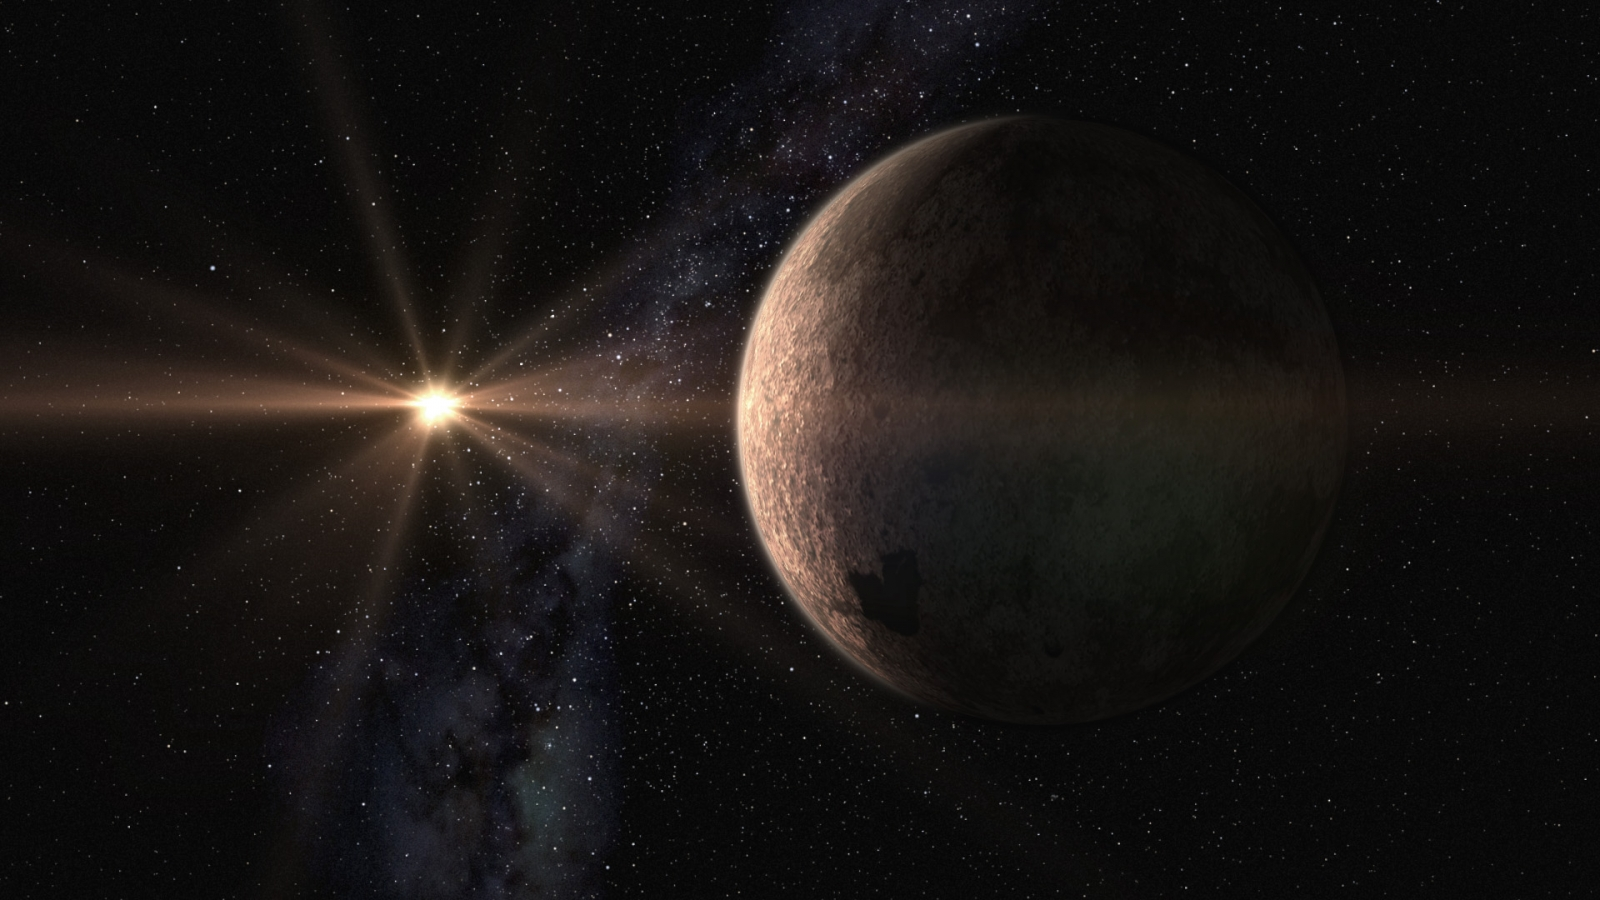 Super Earth orbiting dwarf star